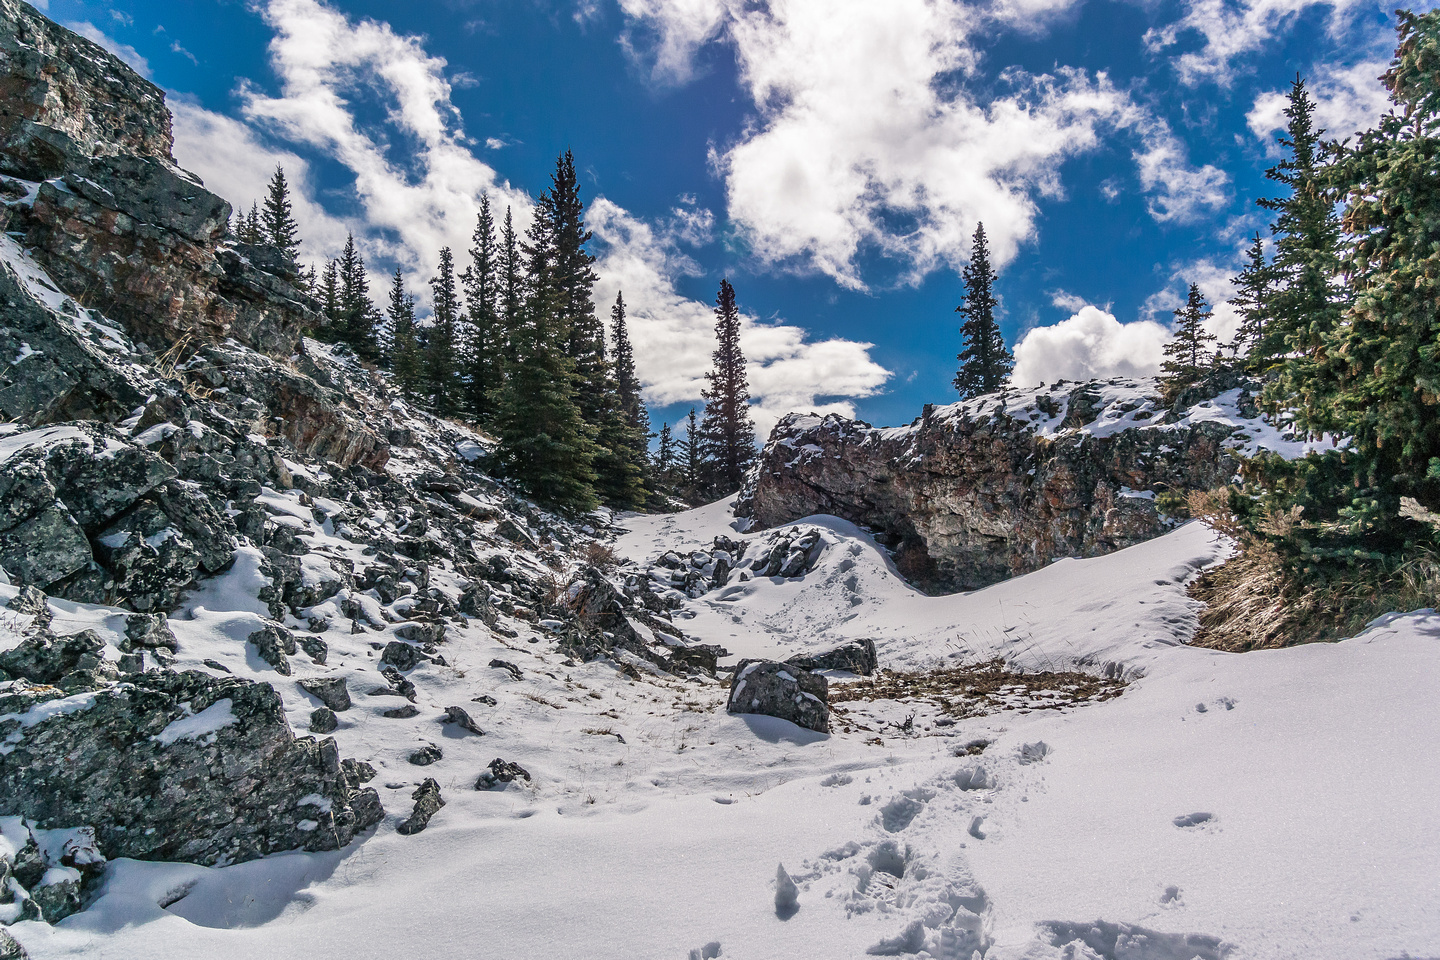 We descended off the summit to the northwest to a nice sheltered lunch spot.